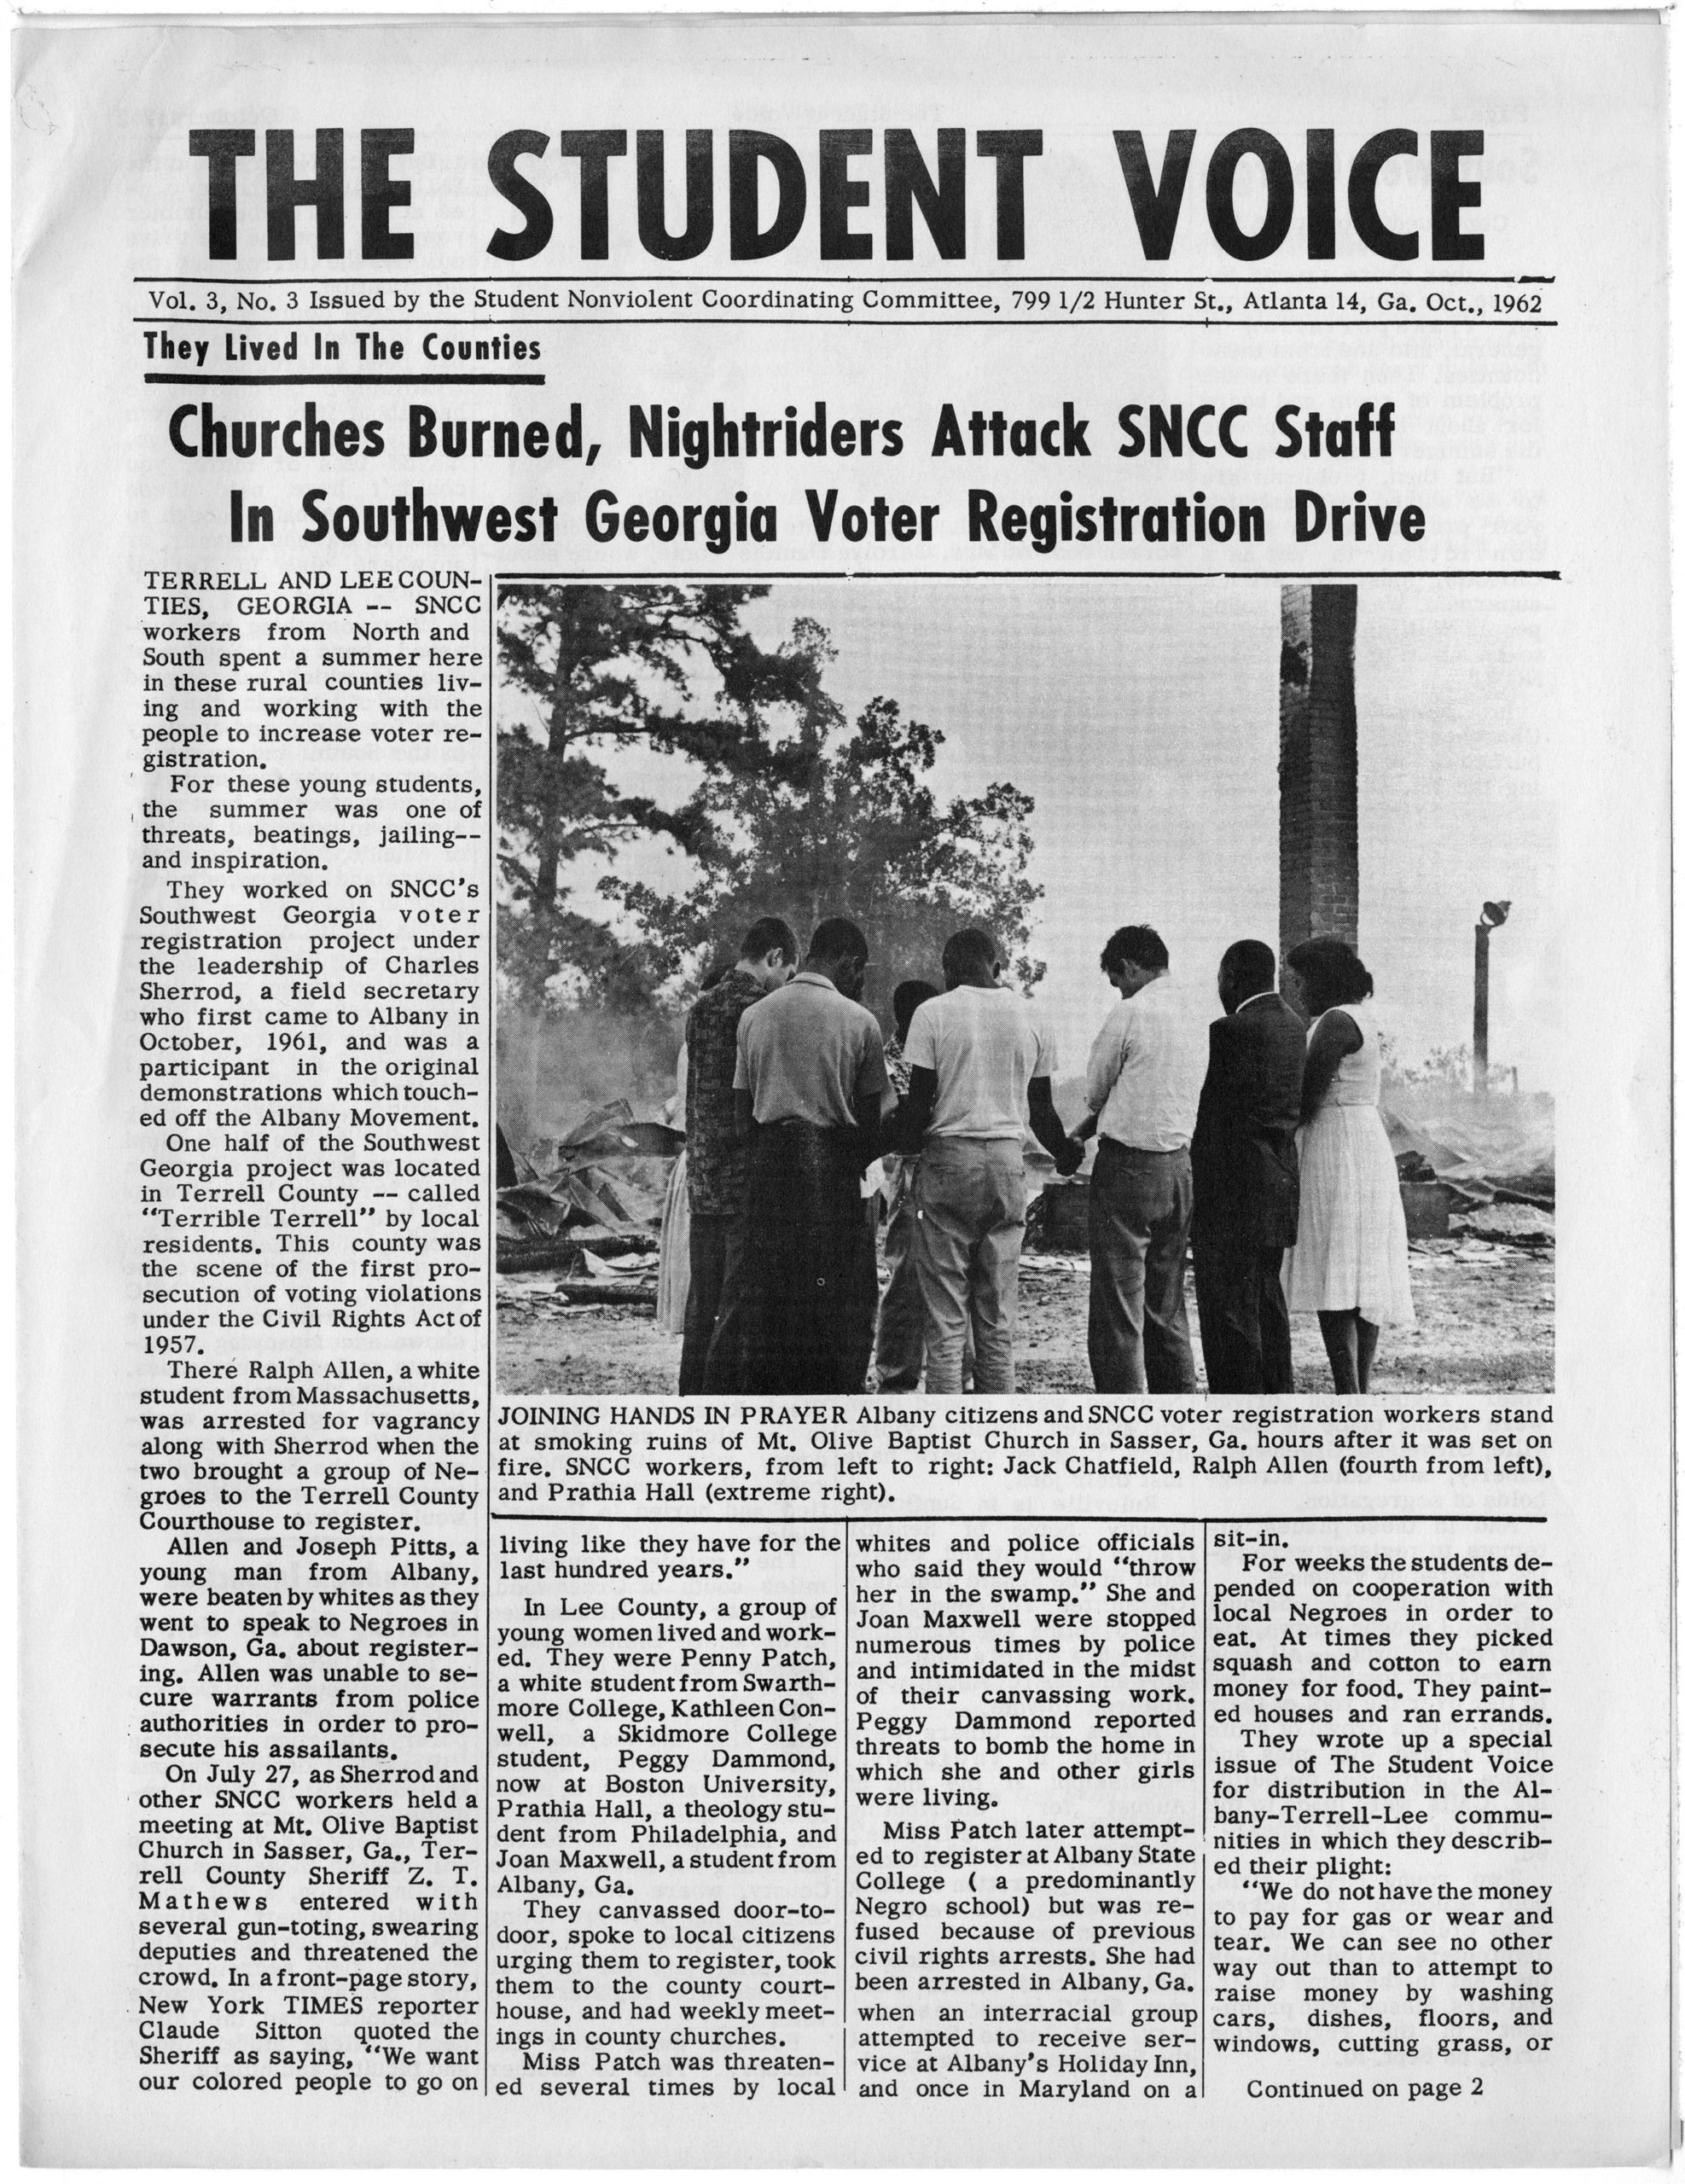 The Student Voice, Student Nonviolent Coordinating Committee (U.S.)1962 OctoberSNCC Vertical File